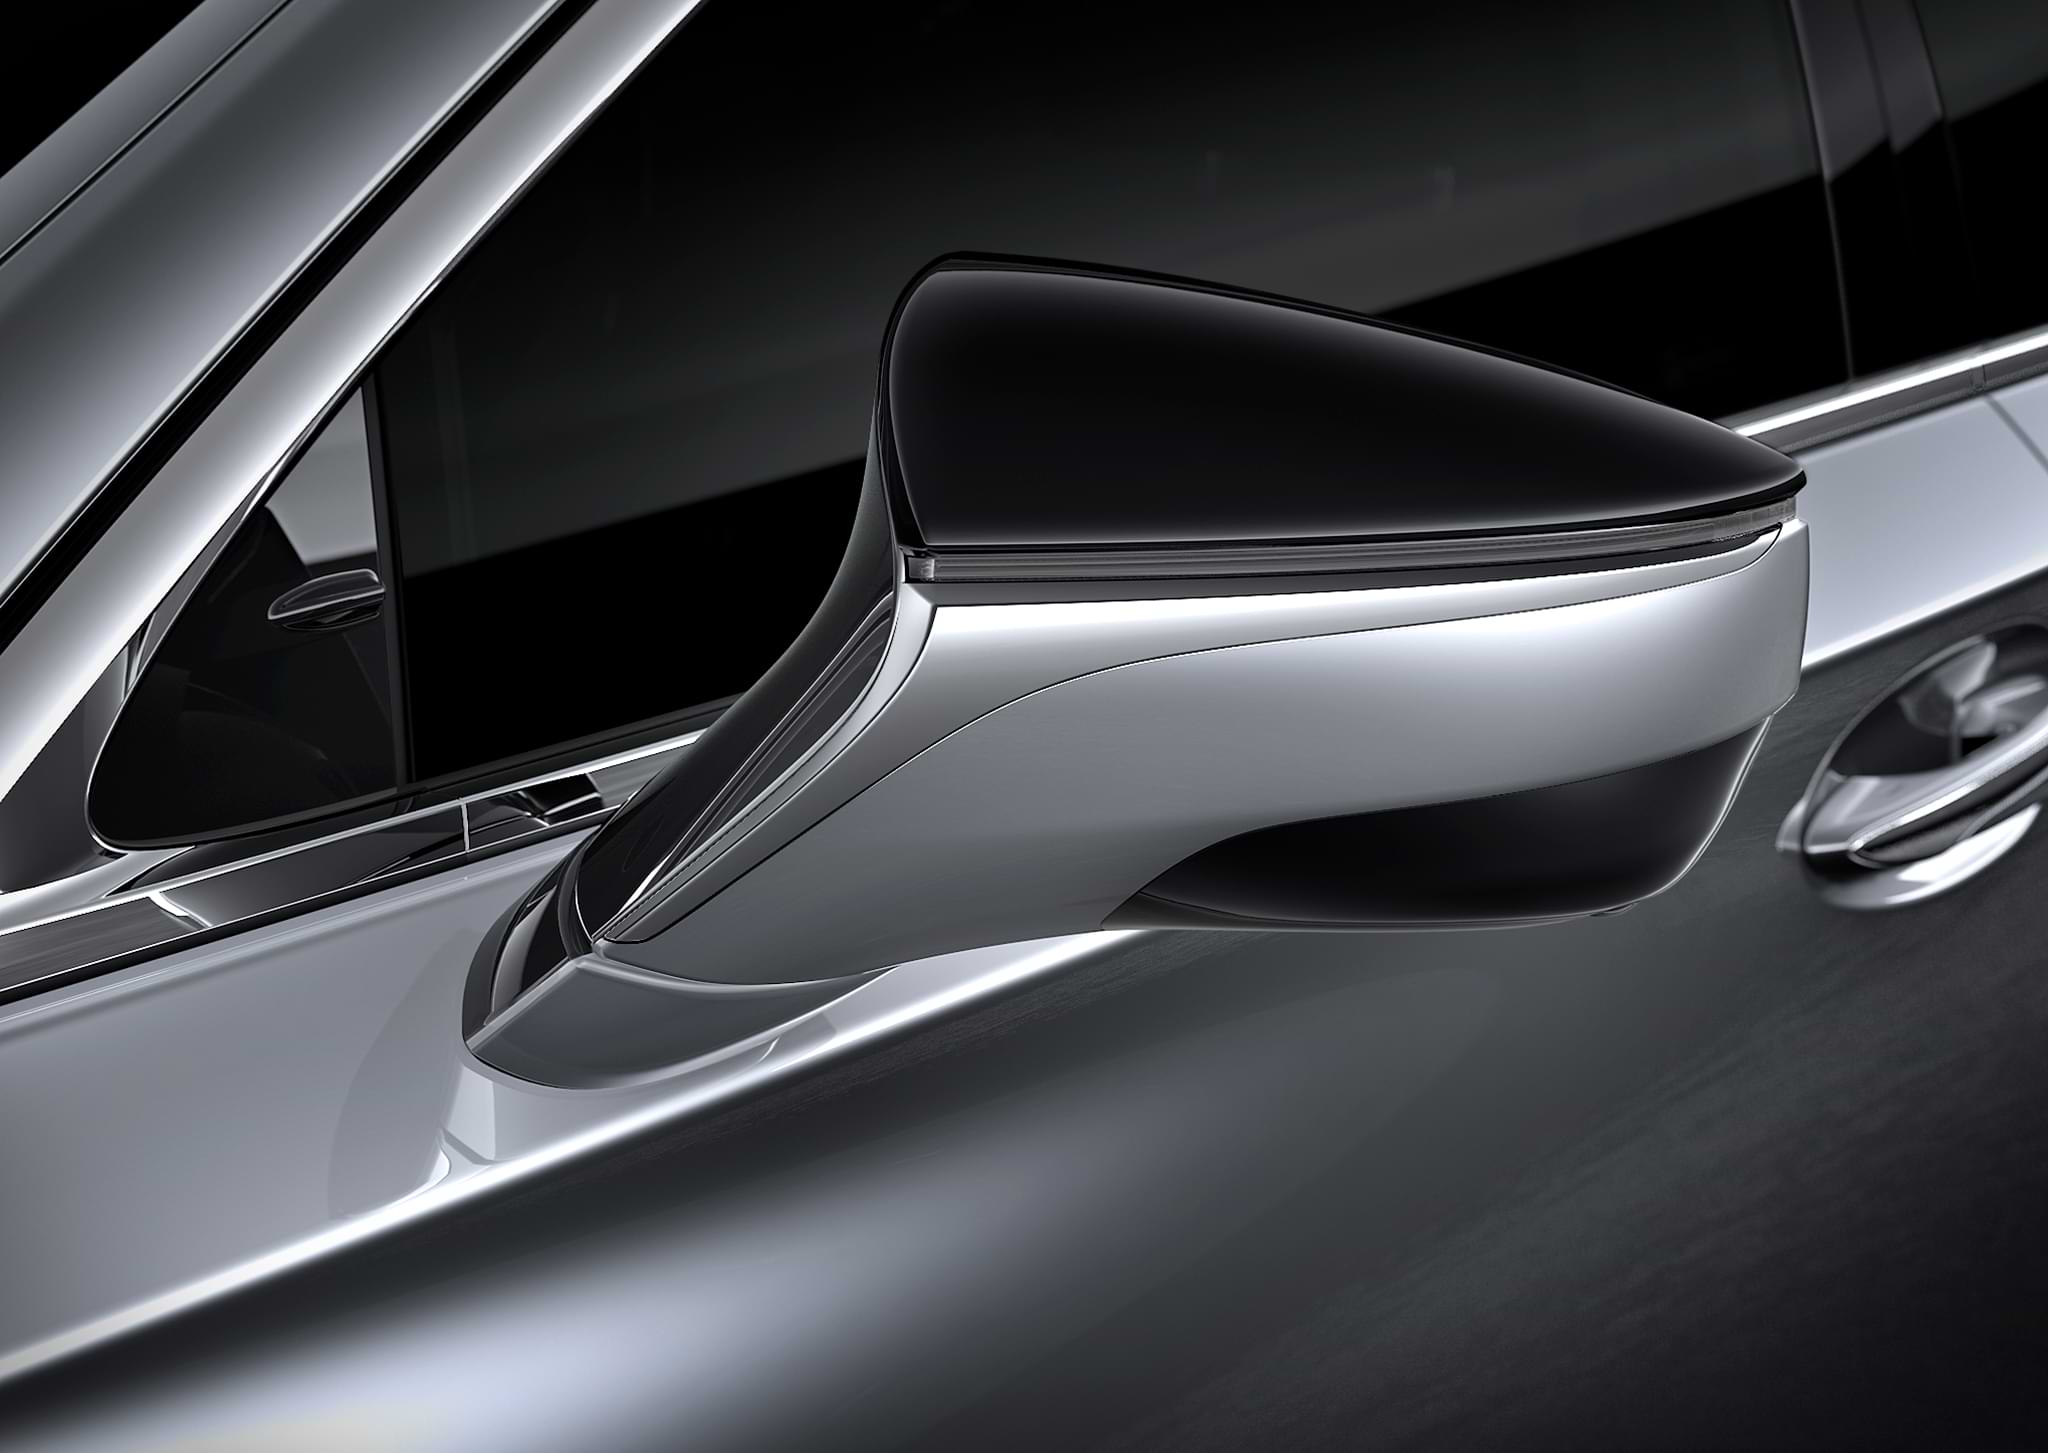 Lexus LS external mirror